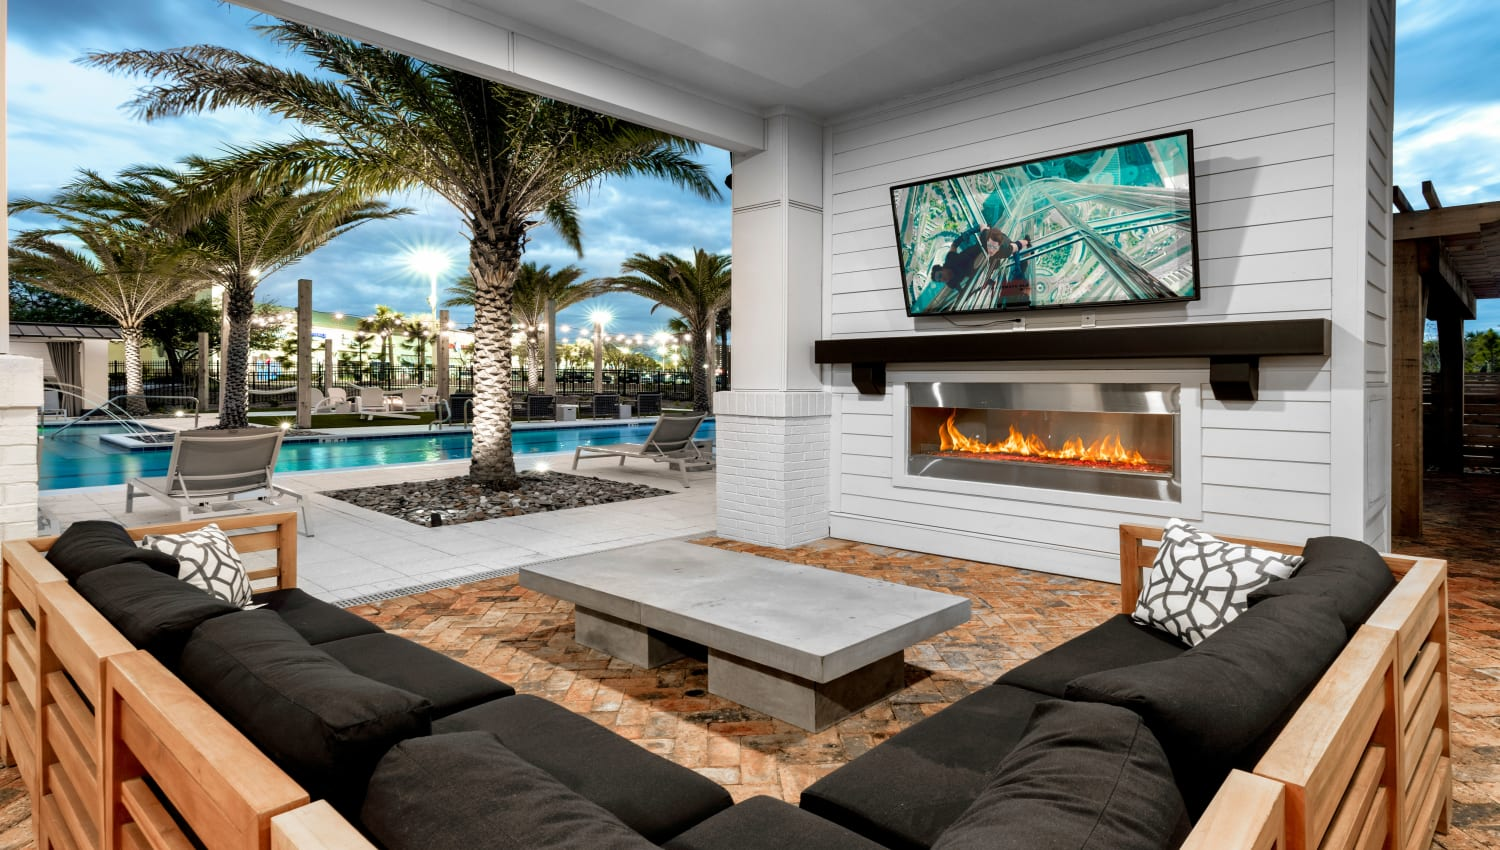 A covered lounge with comfortable seating and a flat-screen TV at Olympus Emerald Coast in Destin, Florida